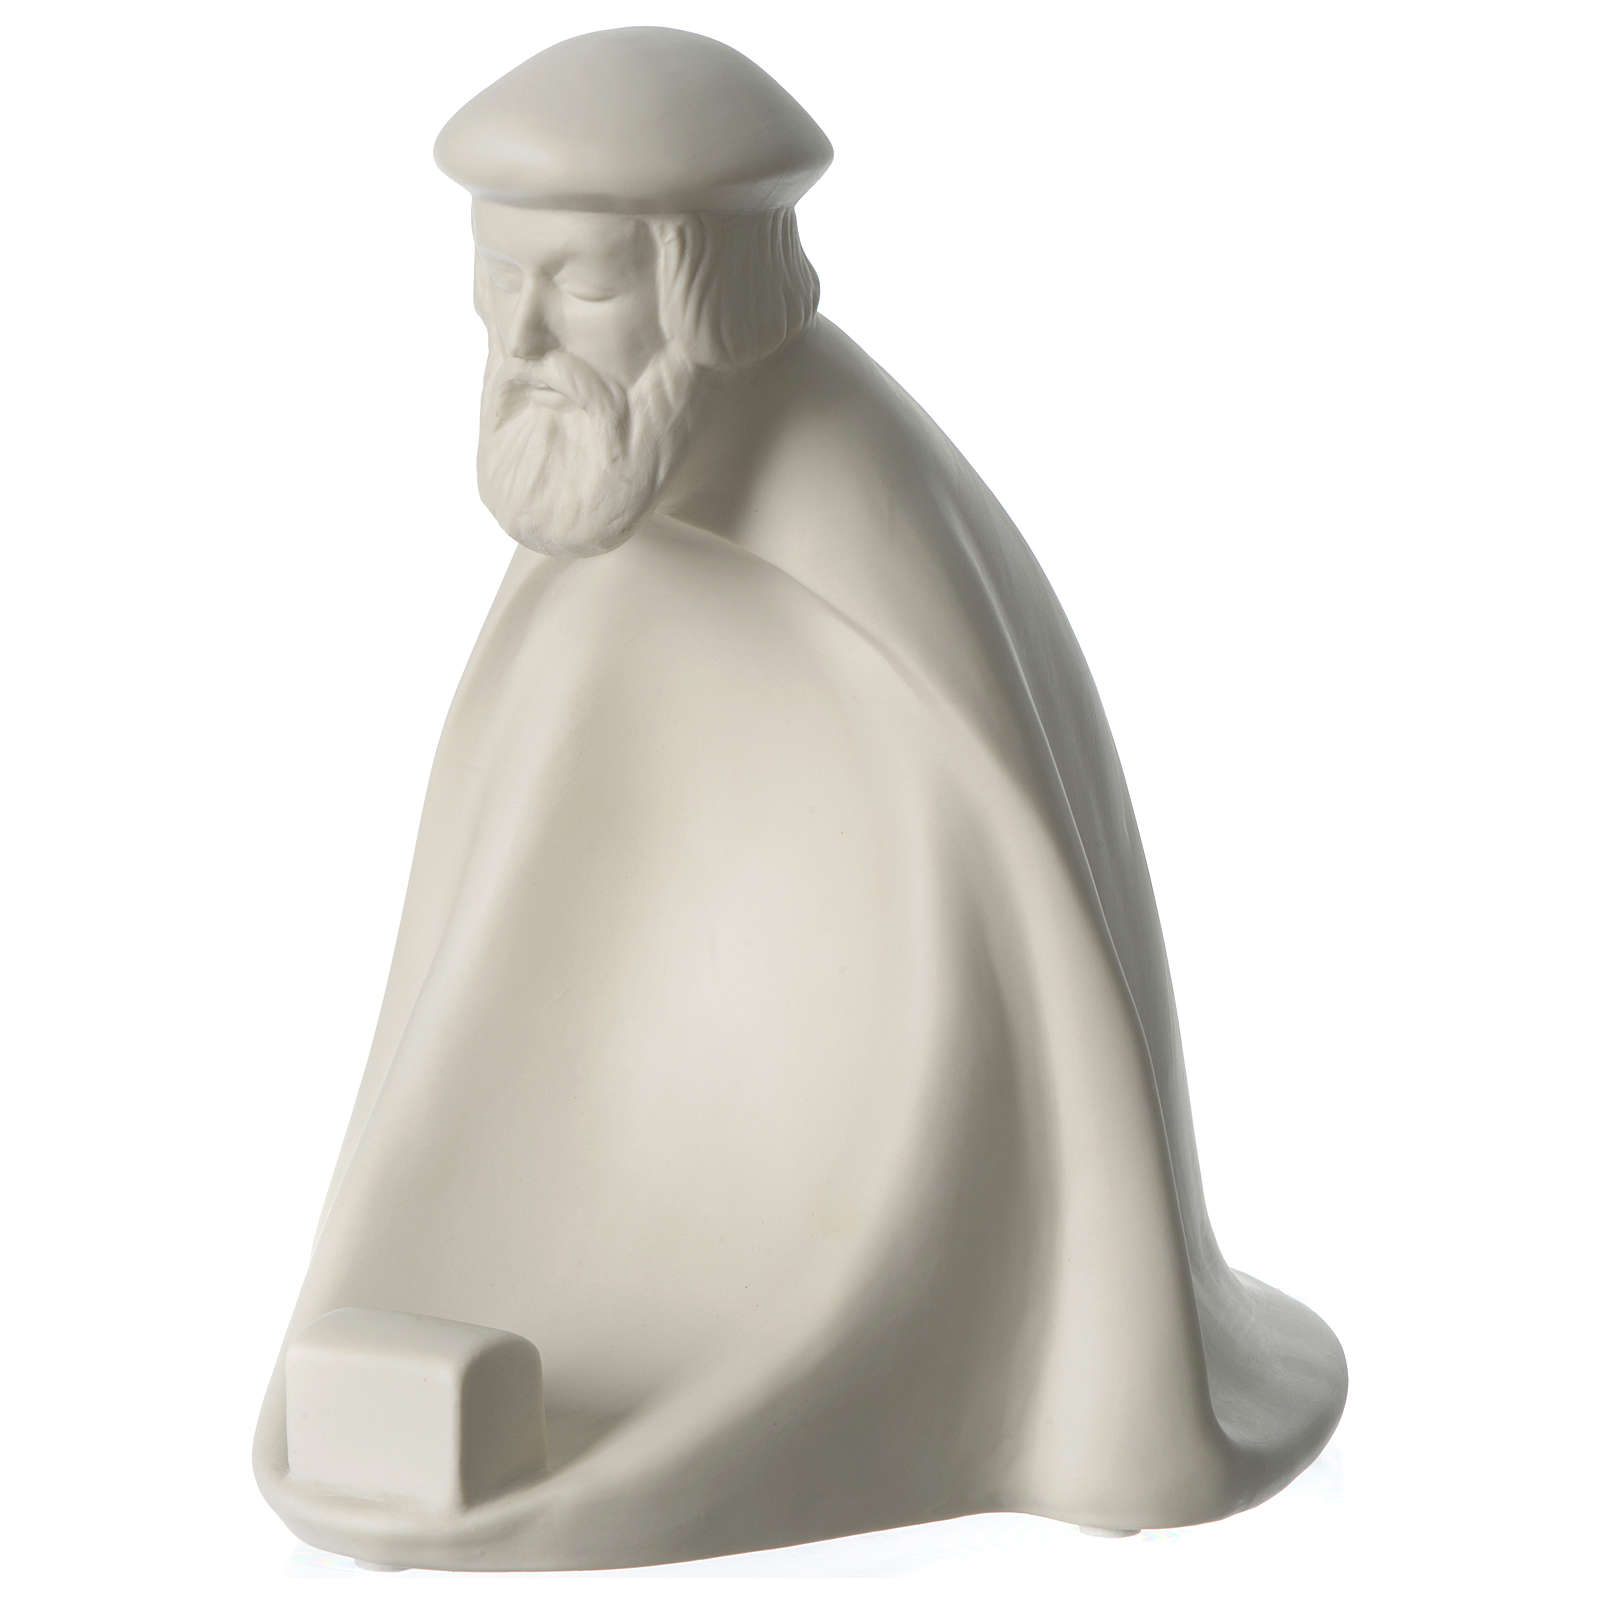 Magi King for 55 cm Nativity scene in porcelain Francesco Pinton 4